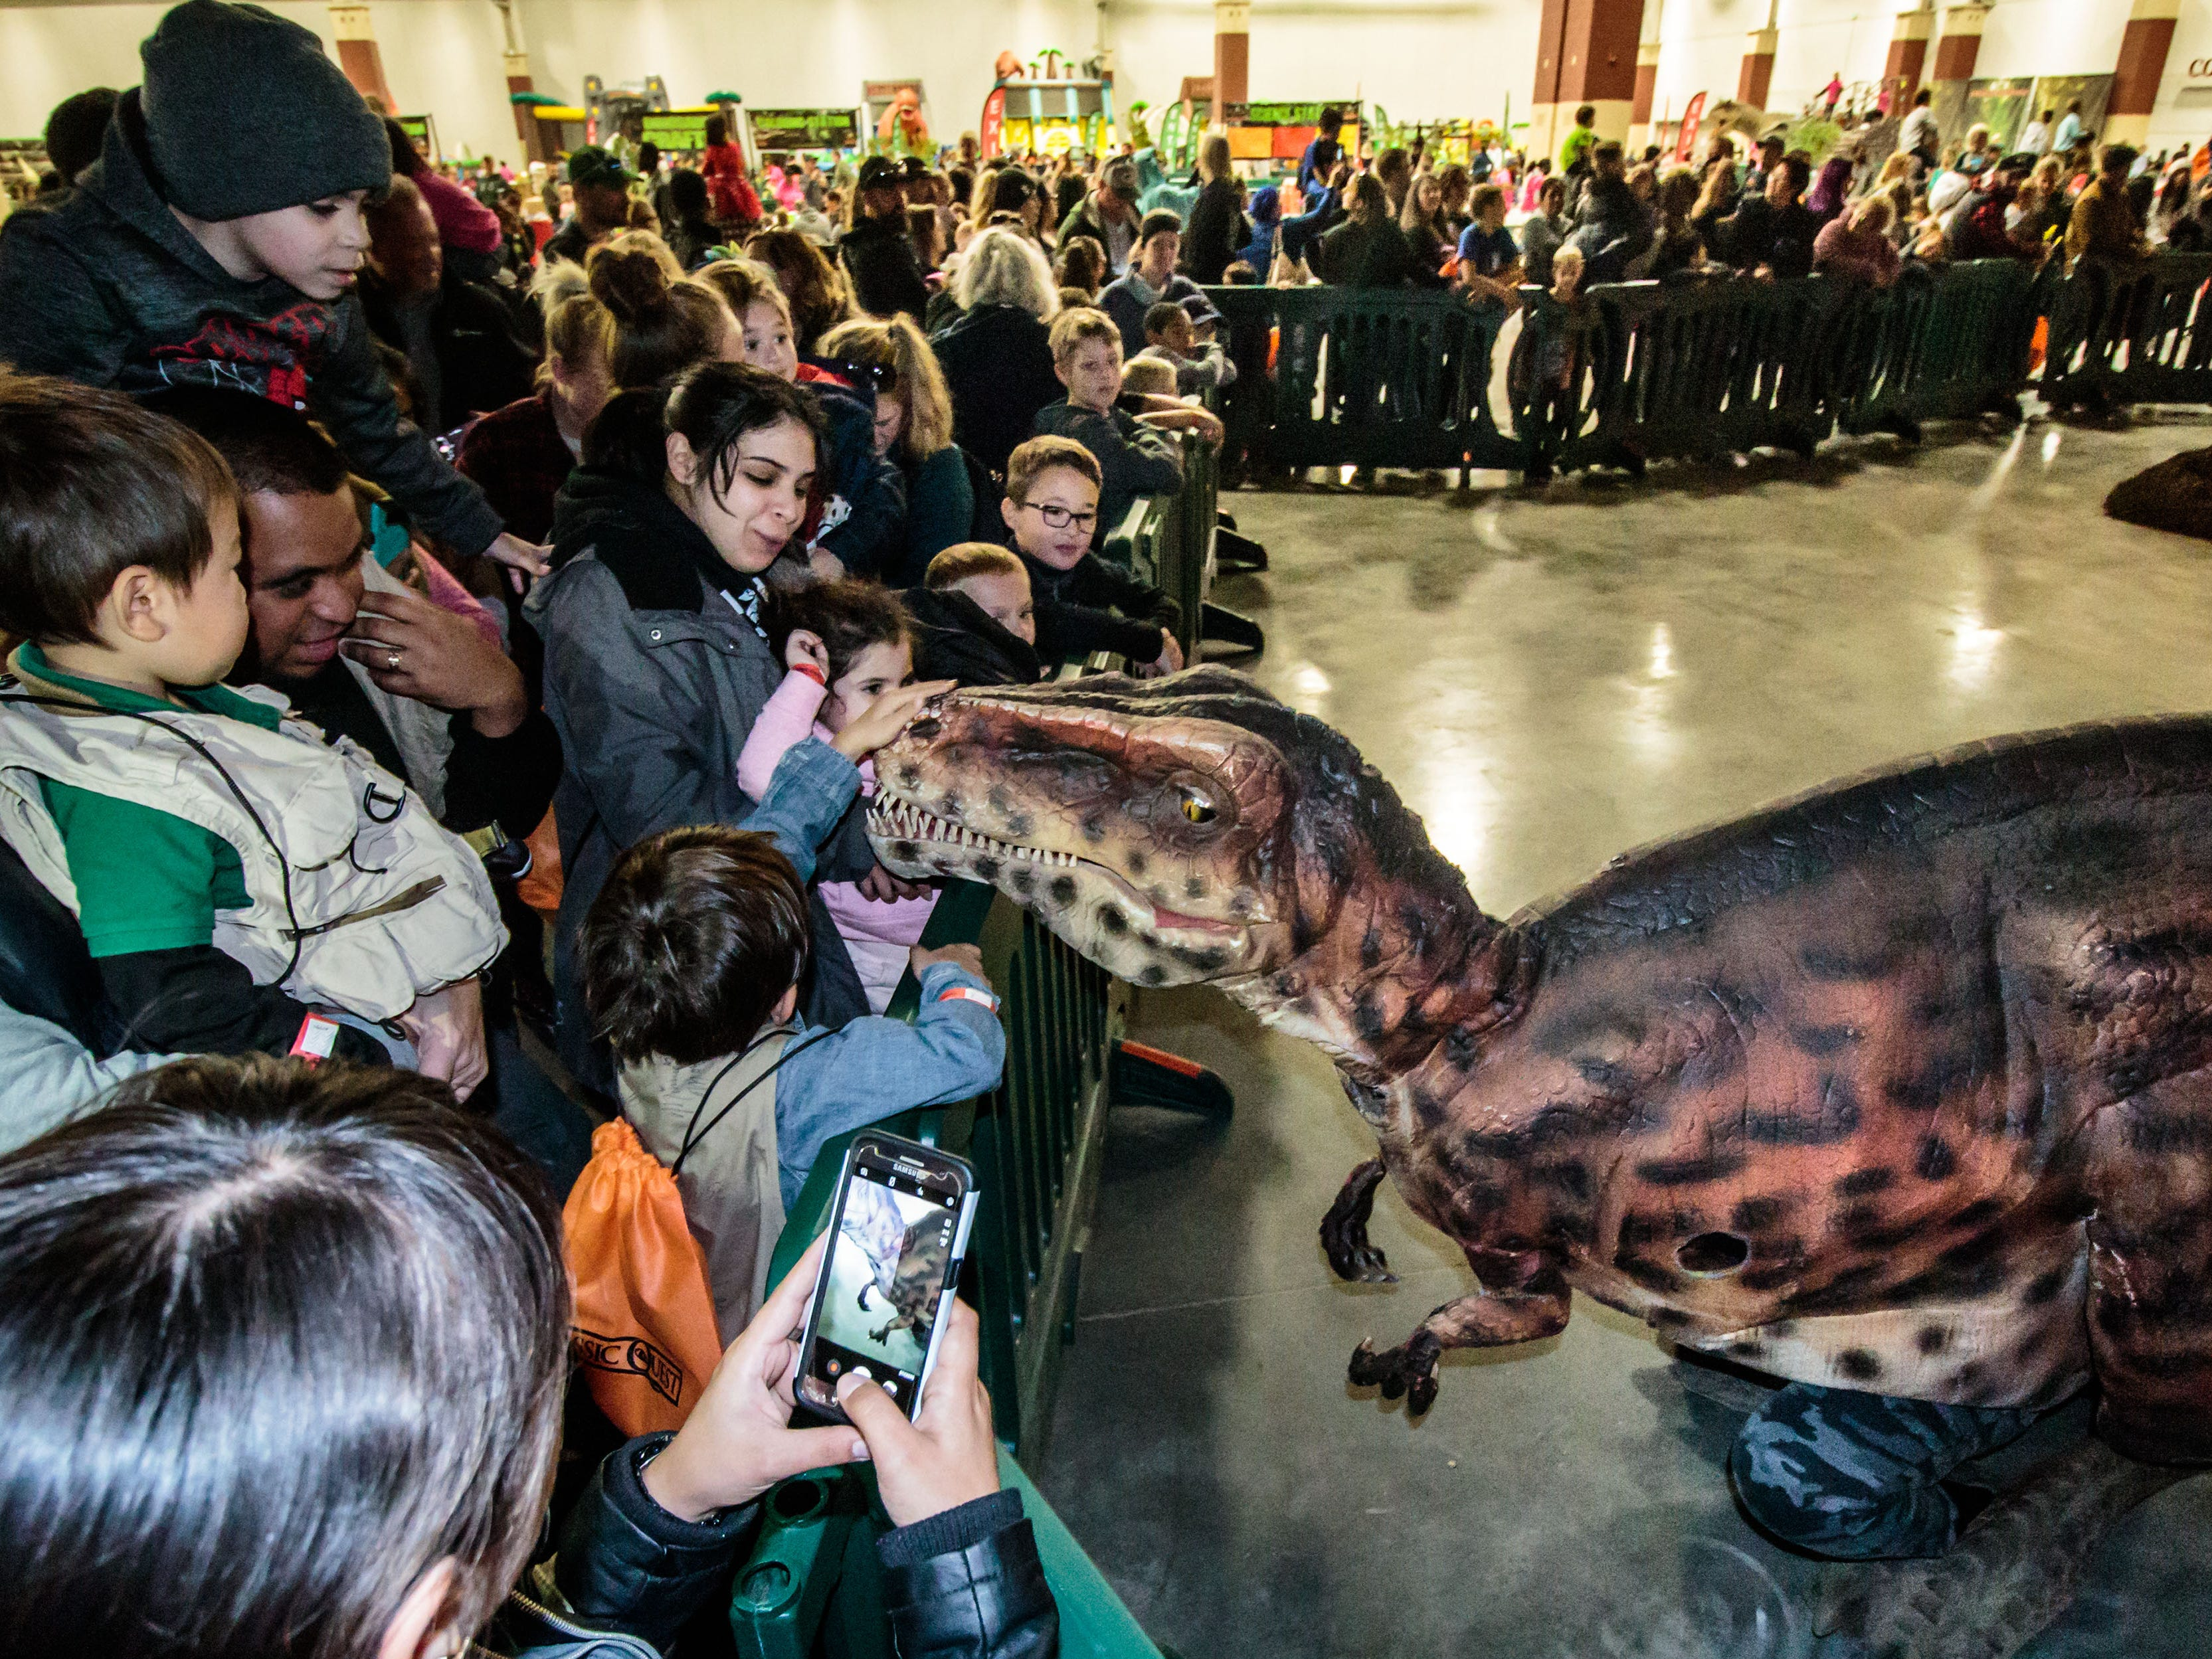 Youngsters gather round to meet Diego the dinosaur during Jurassic Quest at Wisconsin State Fair Park in West Allis on Sunday, Oct. 21, 2018. The three-day event featured more than 80 life-sized animatronic dinosaurs, fossils, games, crafts, bounce houses and more.